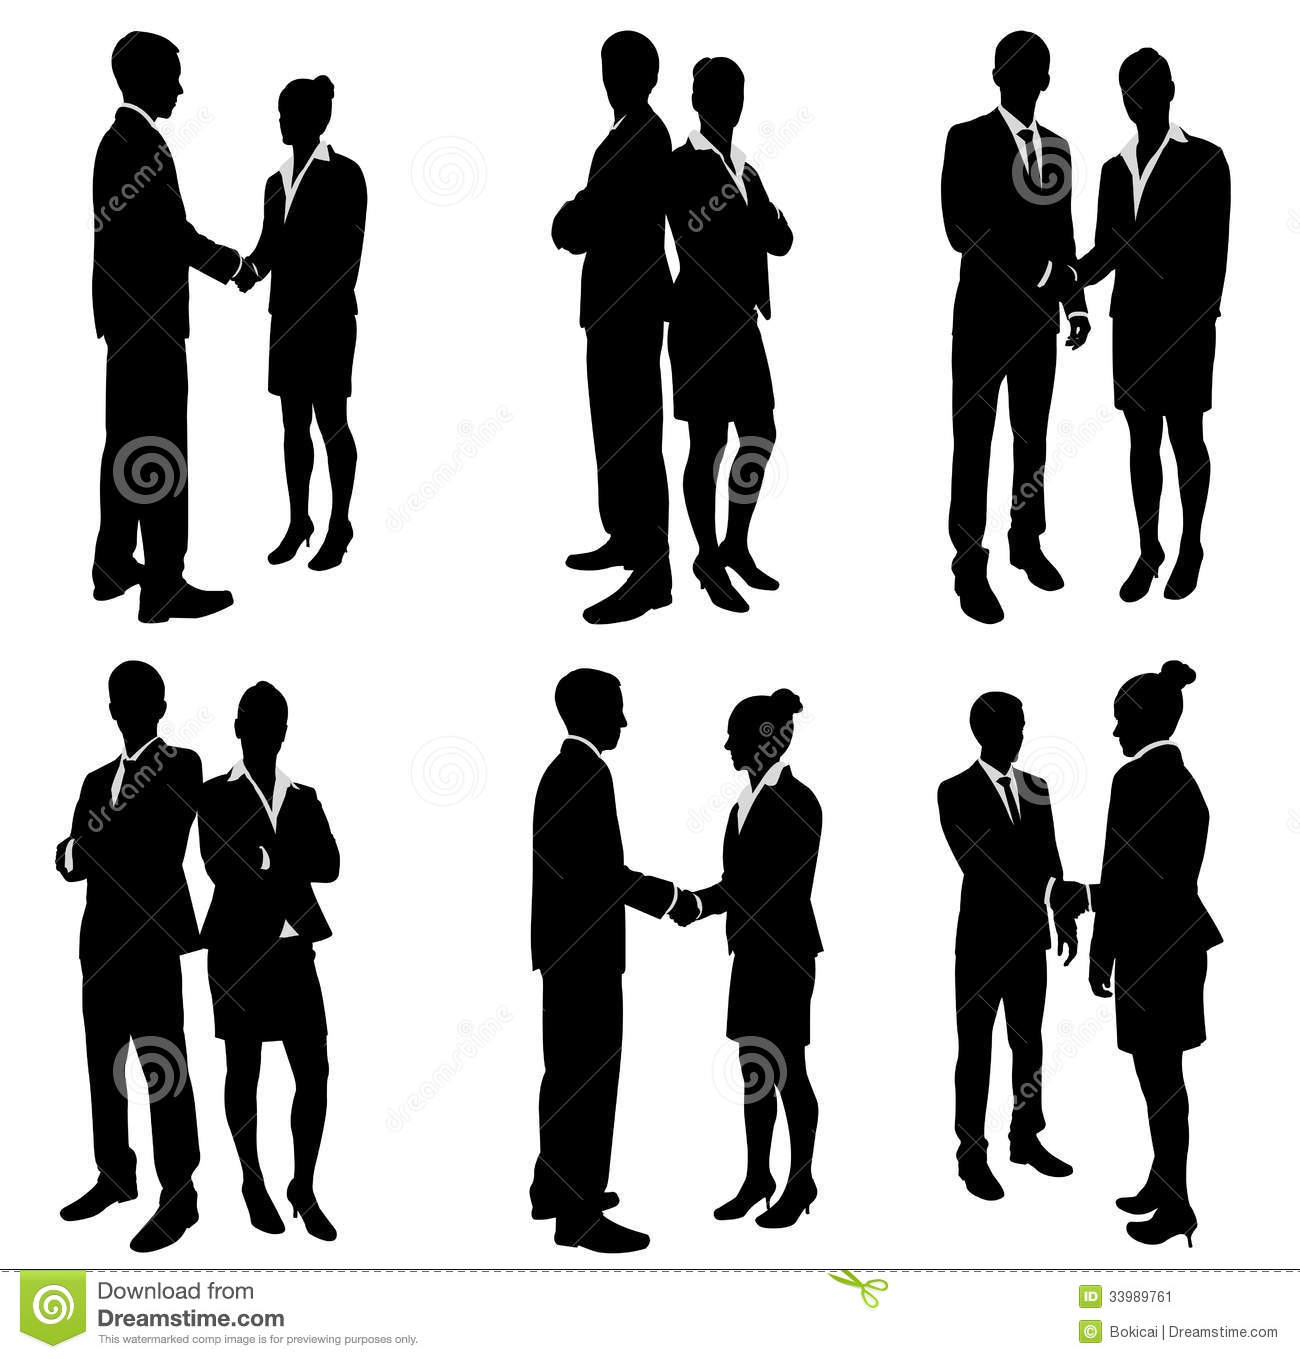 Business people handshake greeting deal at work photo free download - Business People Handshake Silhouettes Stock Image